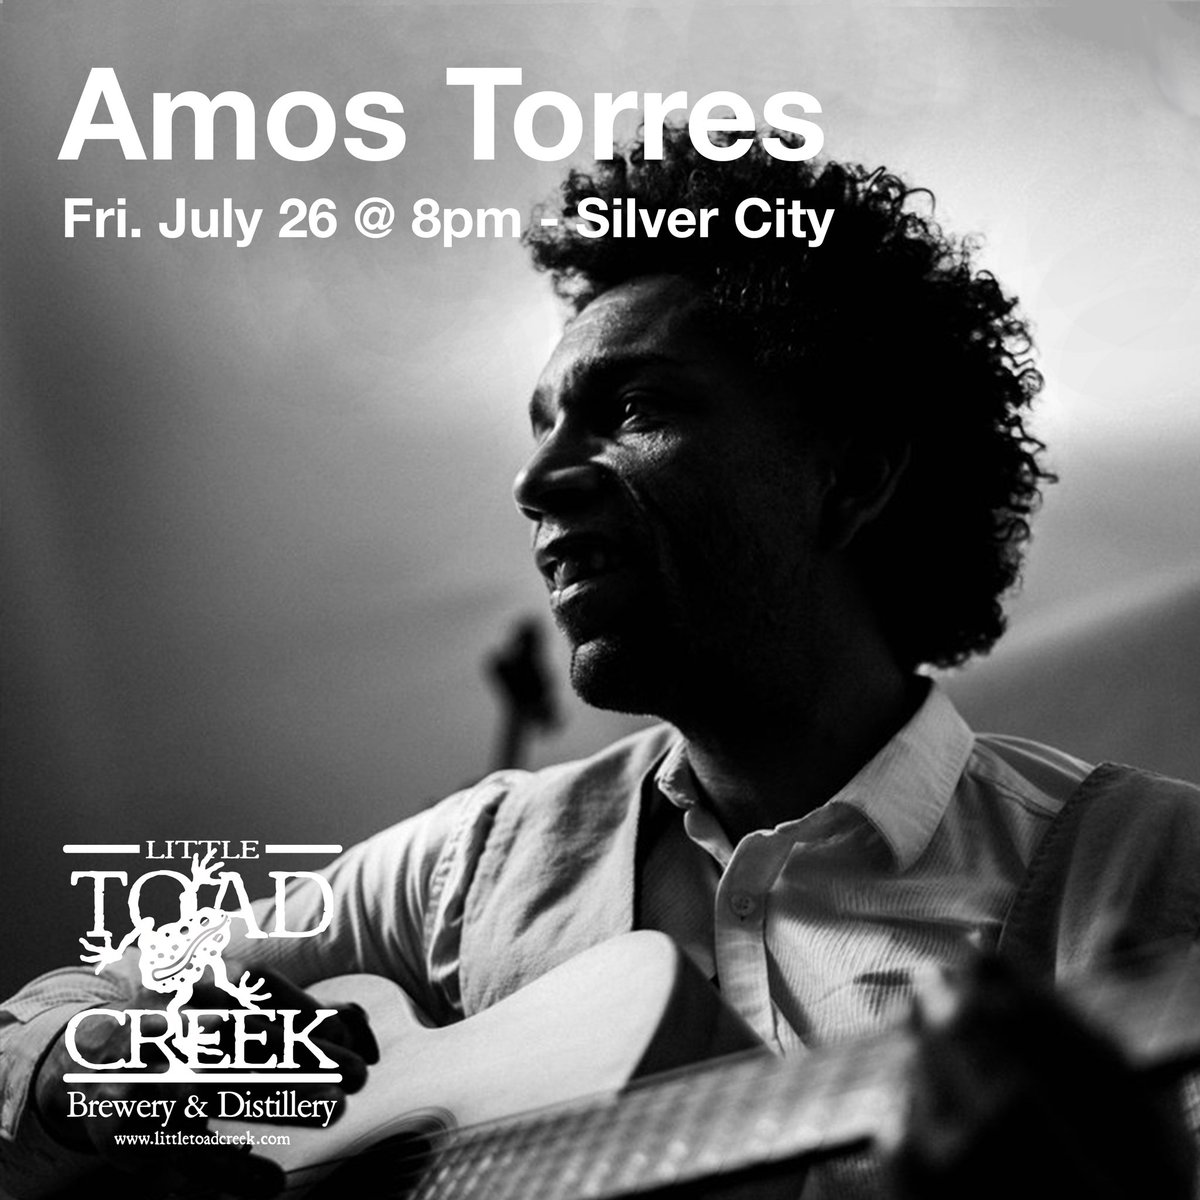 This Friday, the man, the myth, the legend, Amos Torres is playing at the Toad starting at 8pm! Come hang!  #amostorres #littletoadcreek #silvercitynm #nmbreweries https://t.co/E5Dk7PDHMn